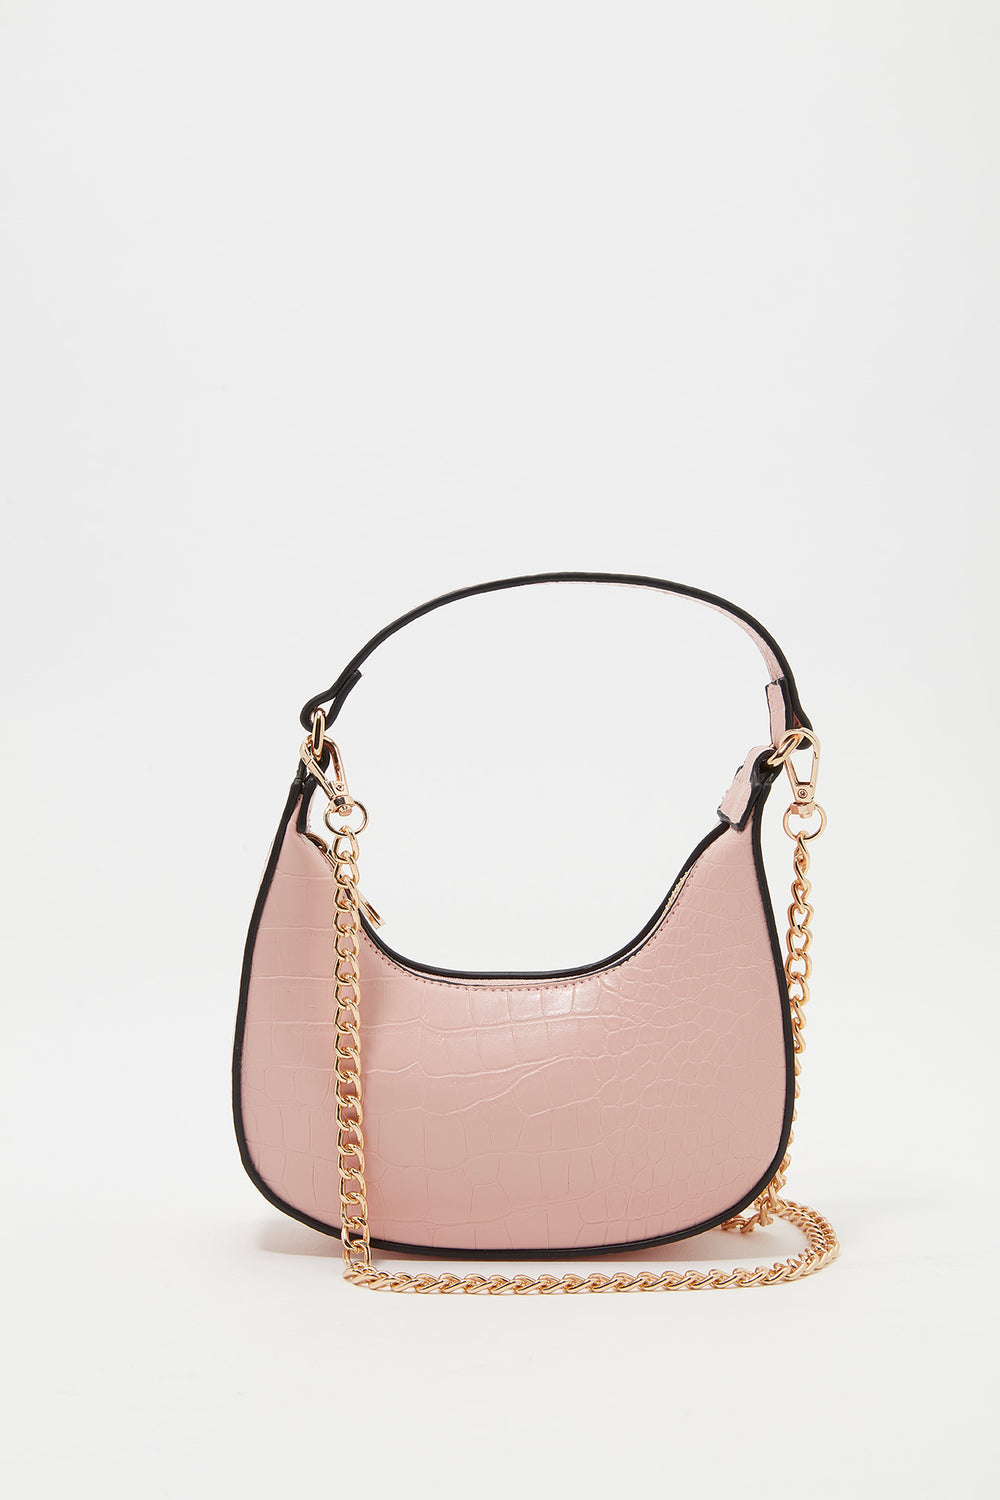 Mini Chain Strap Shoulder Bag Rose